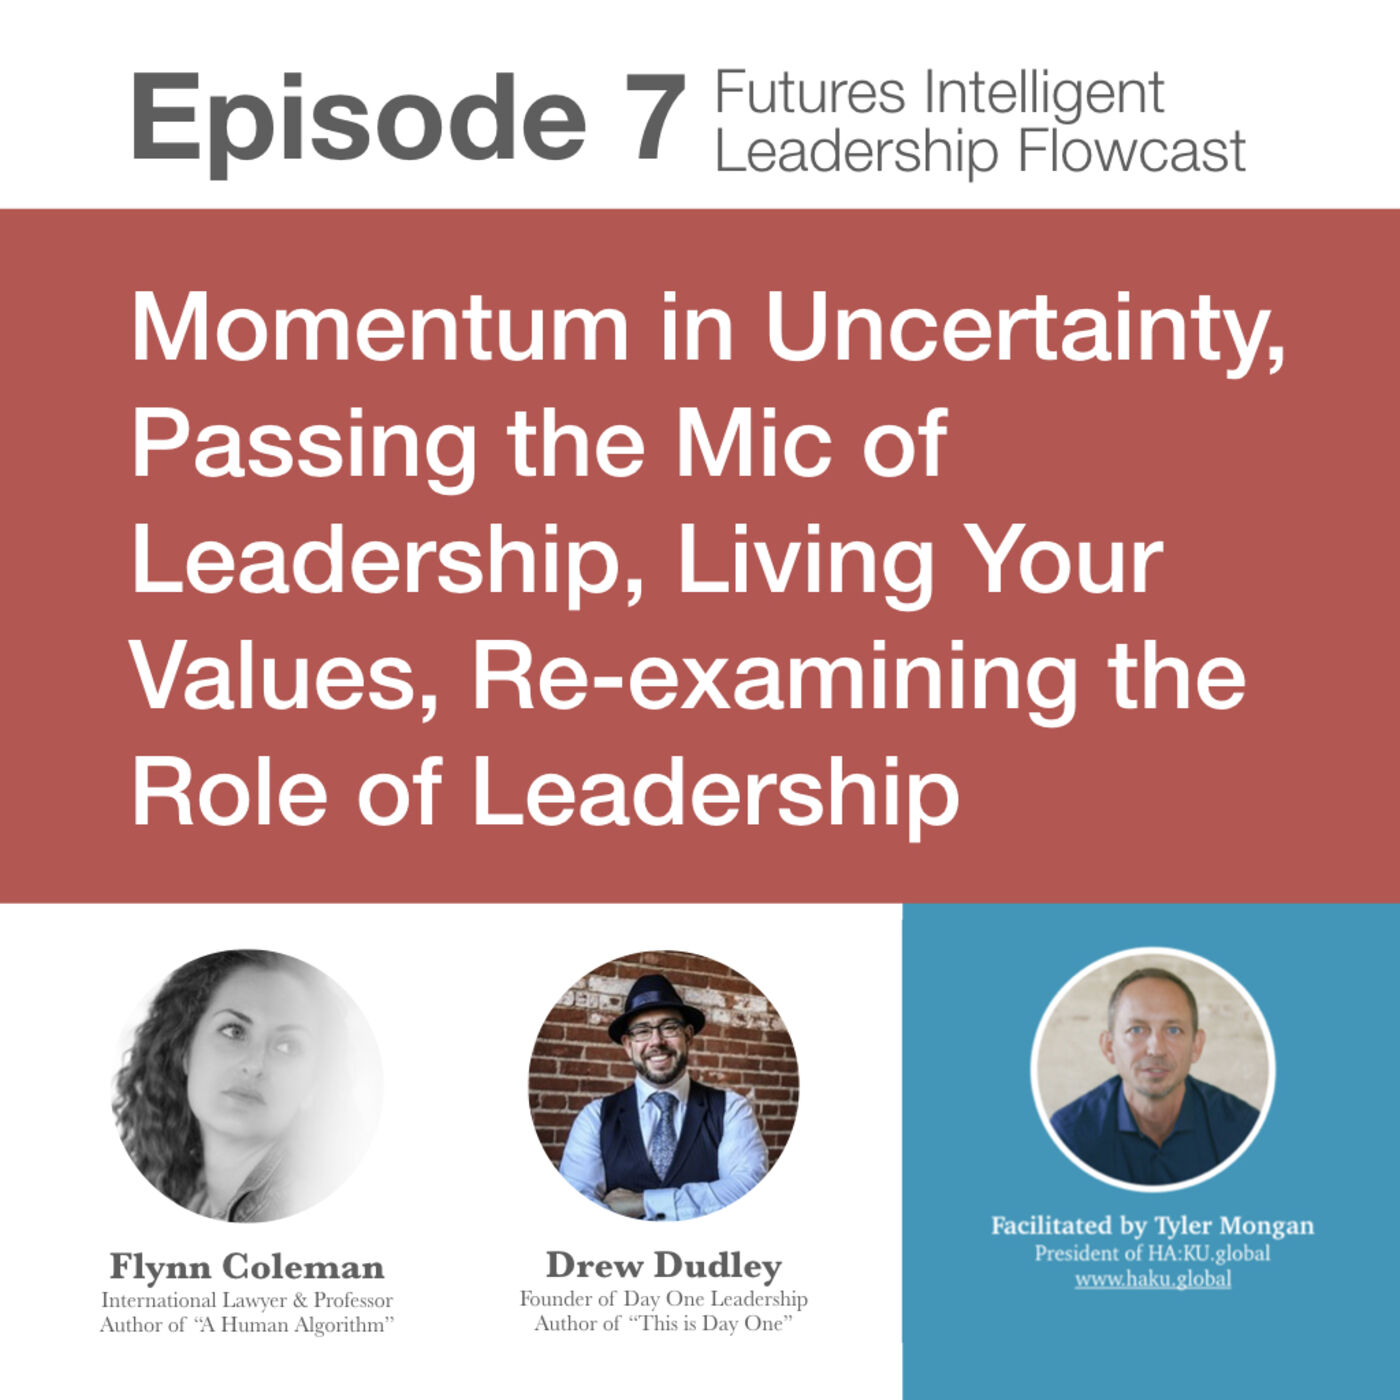 Episode 7: Momentum in Uncertainty, Passing the Mic of Leadership, Living Your Values, Re-examining the Role of Leadership